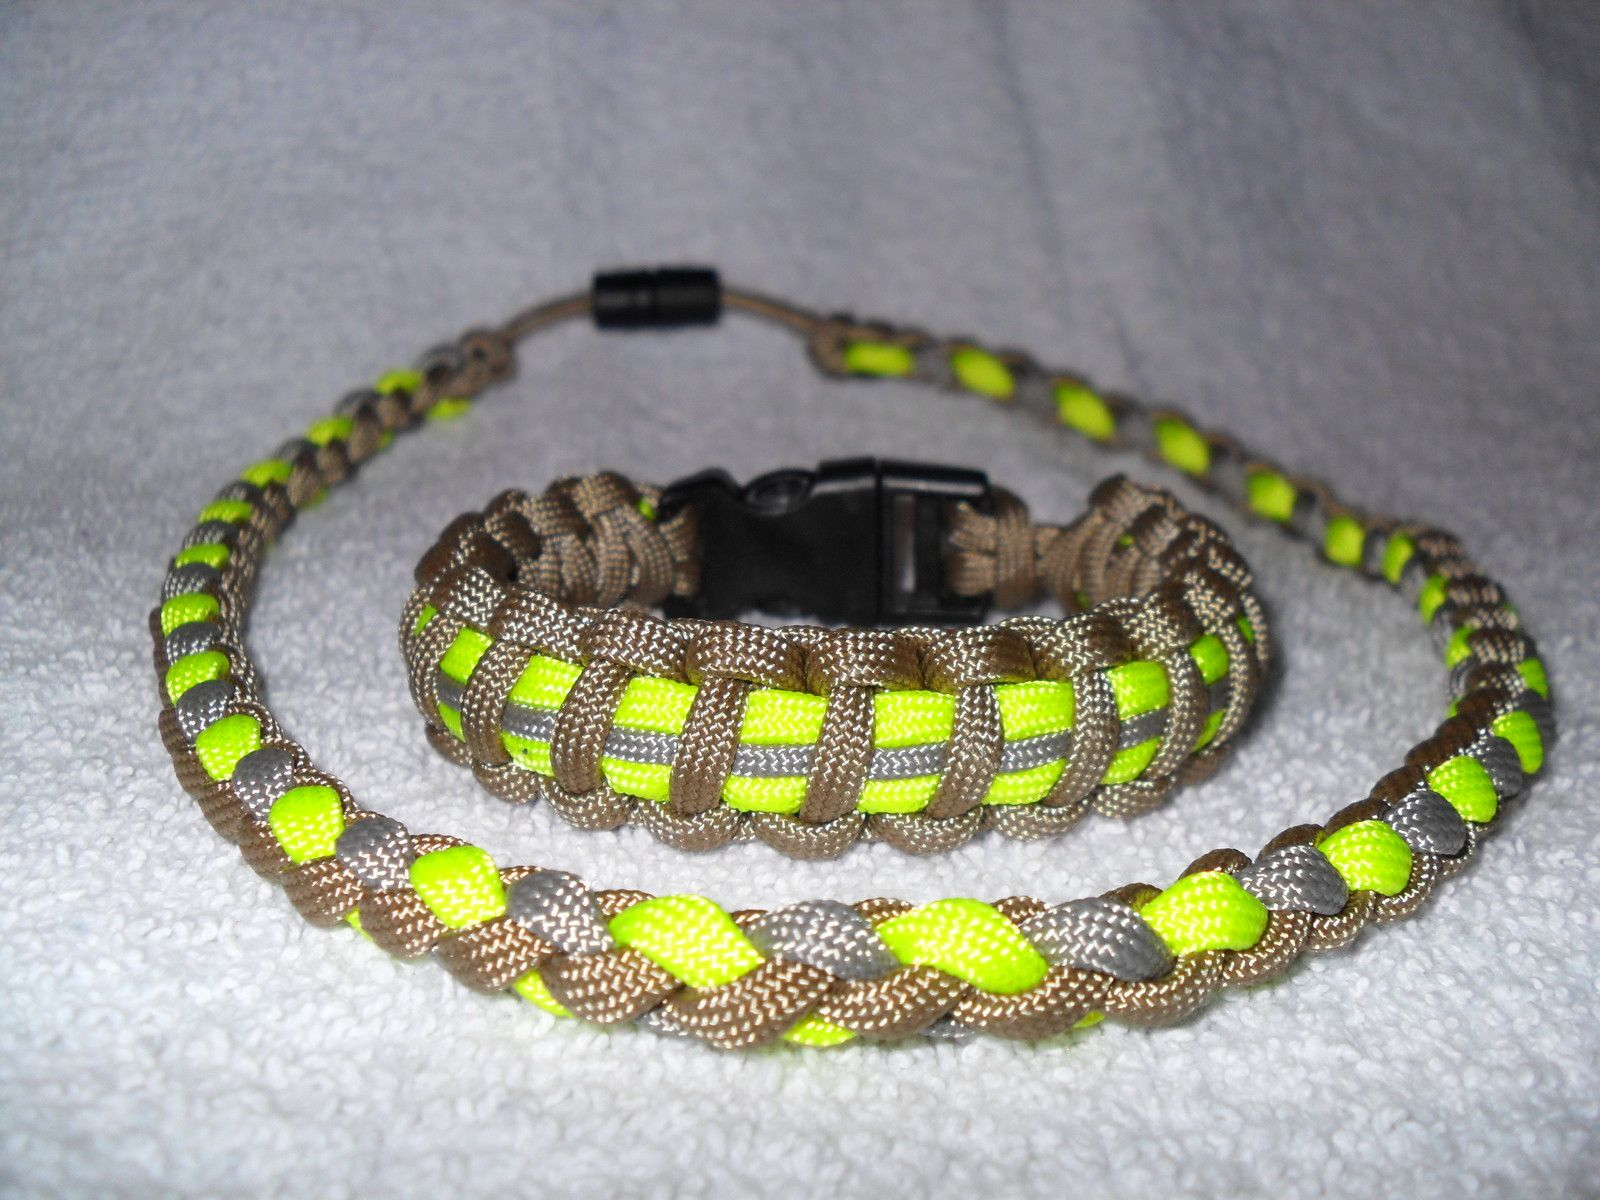 Bunker Gear Survival Paracord Necklace Bracelet Set Paracord